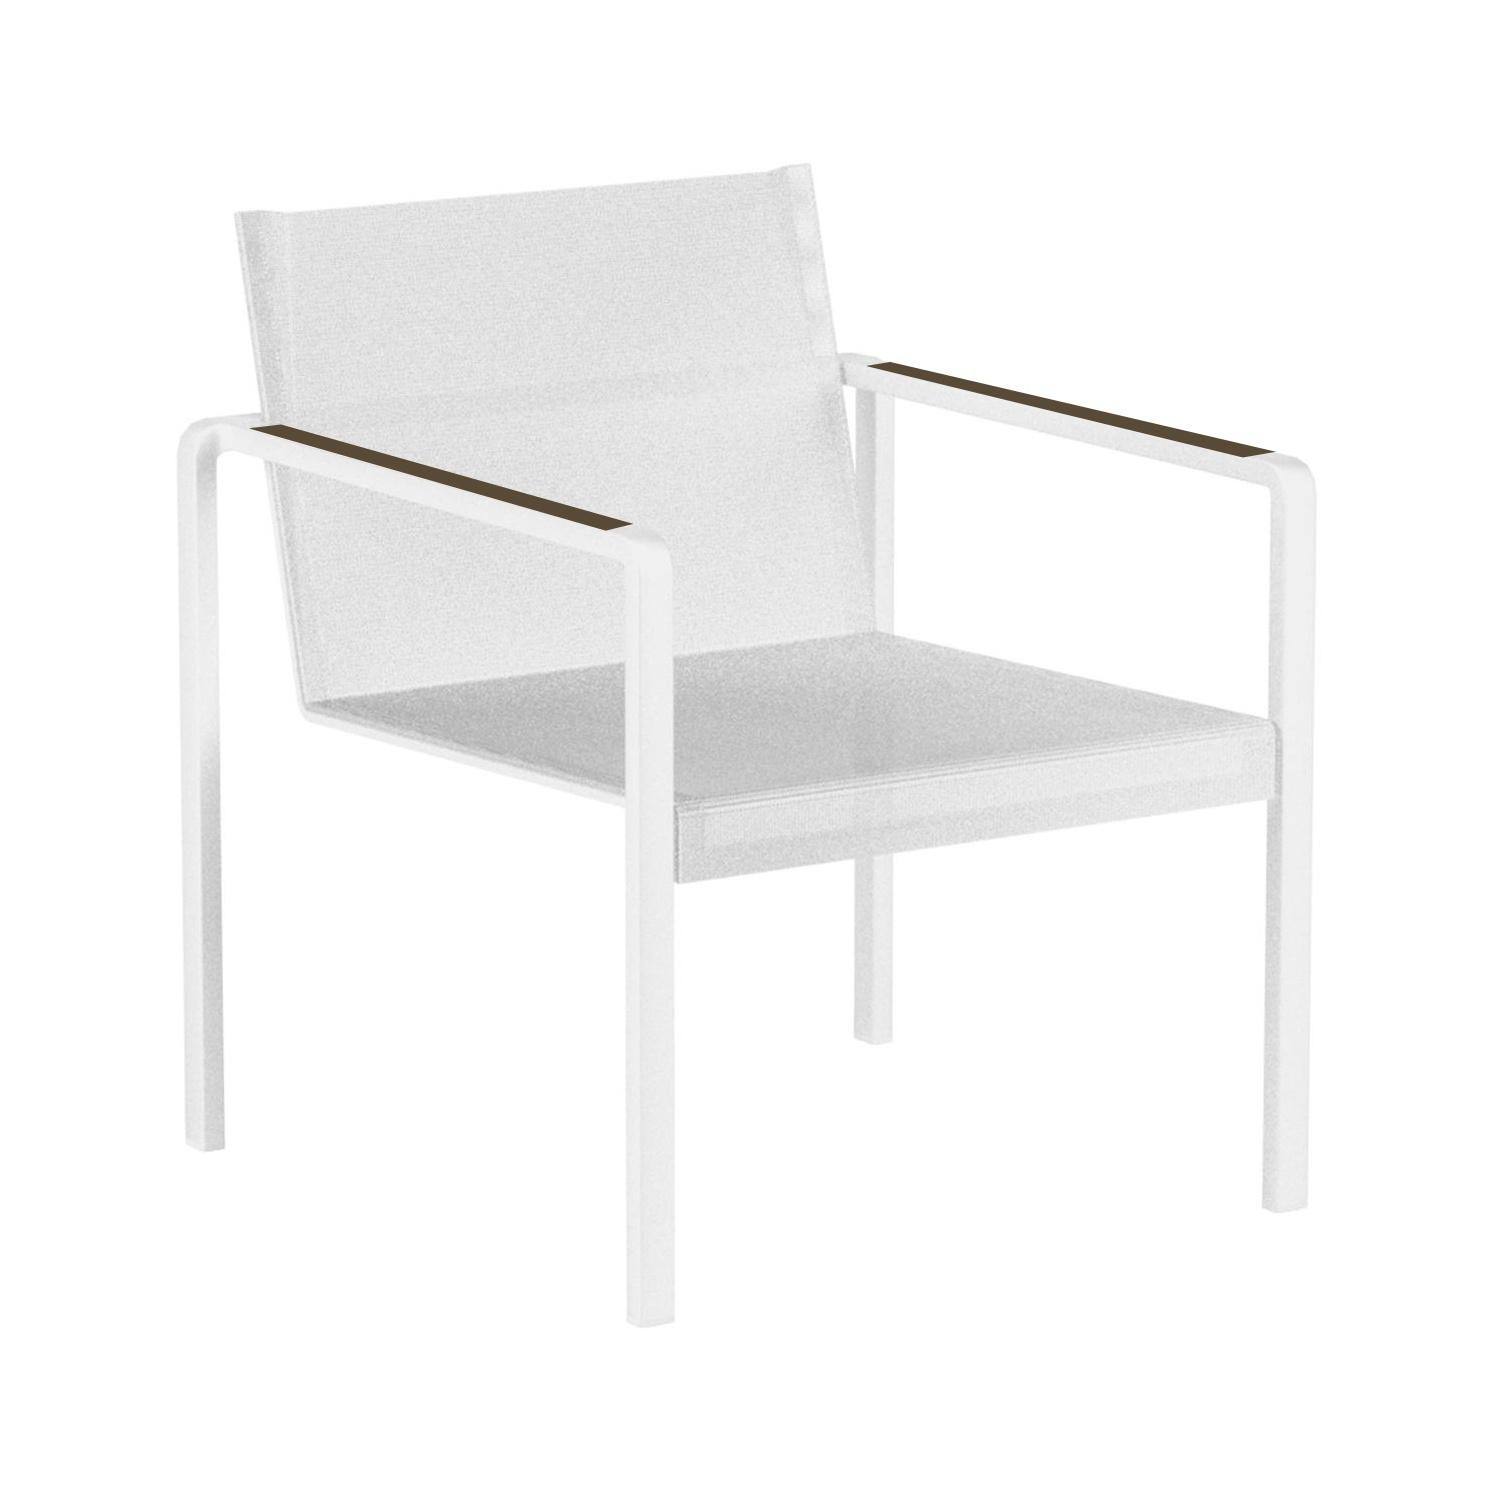 Royal Botania   Alura Outdoor Lounge Chair ...